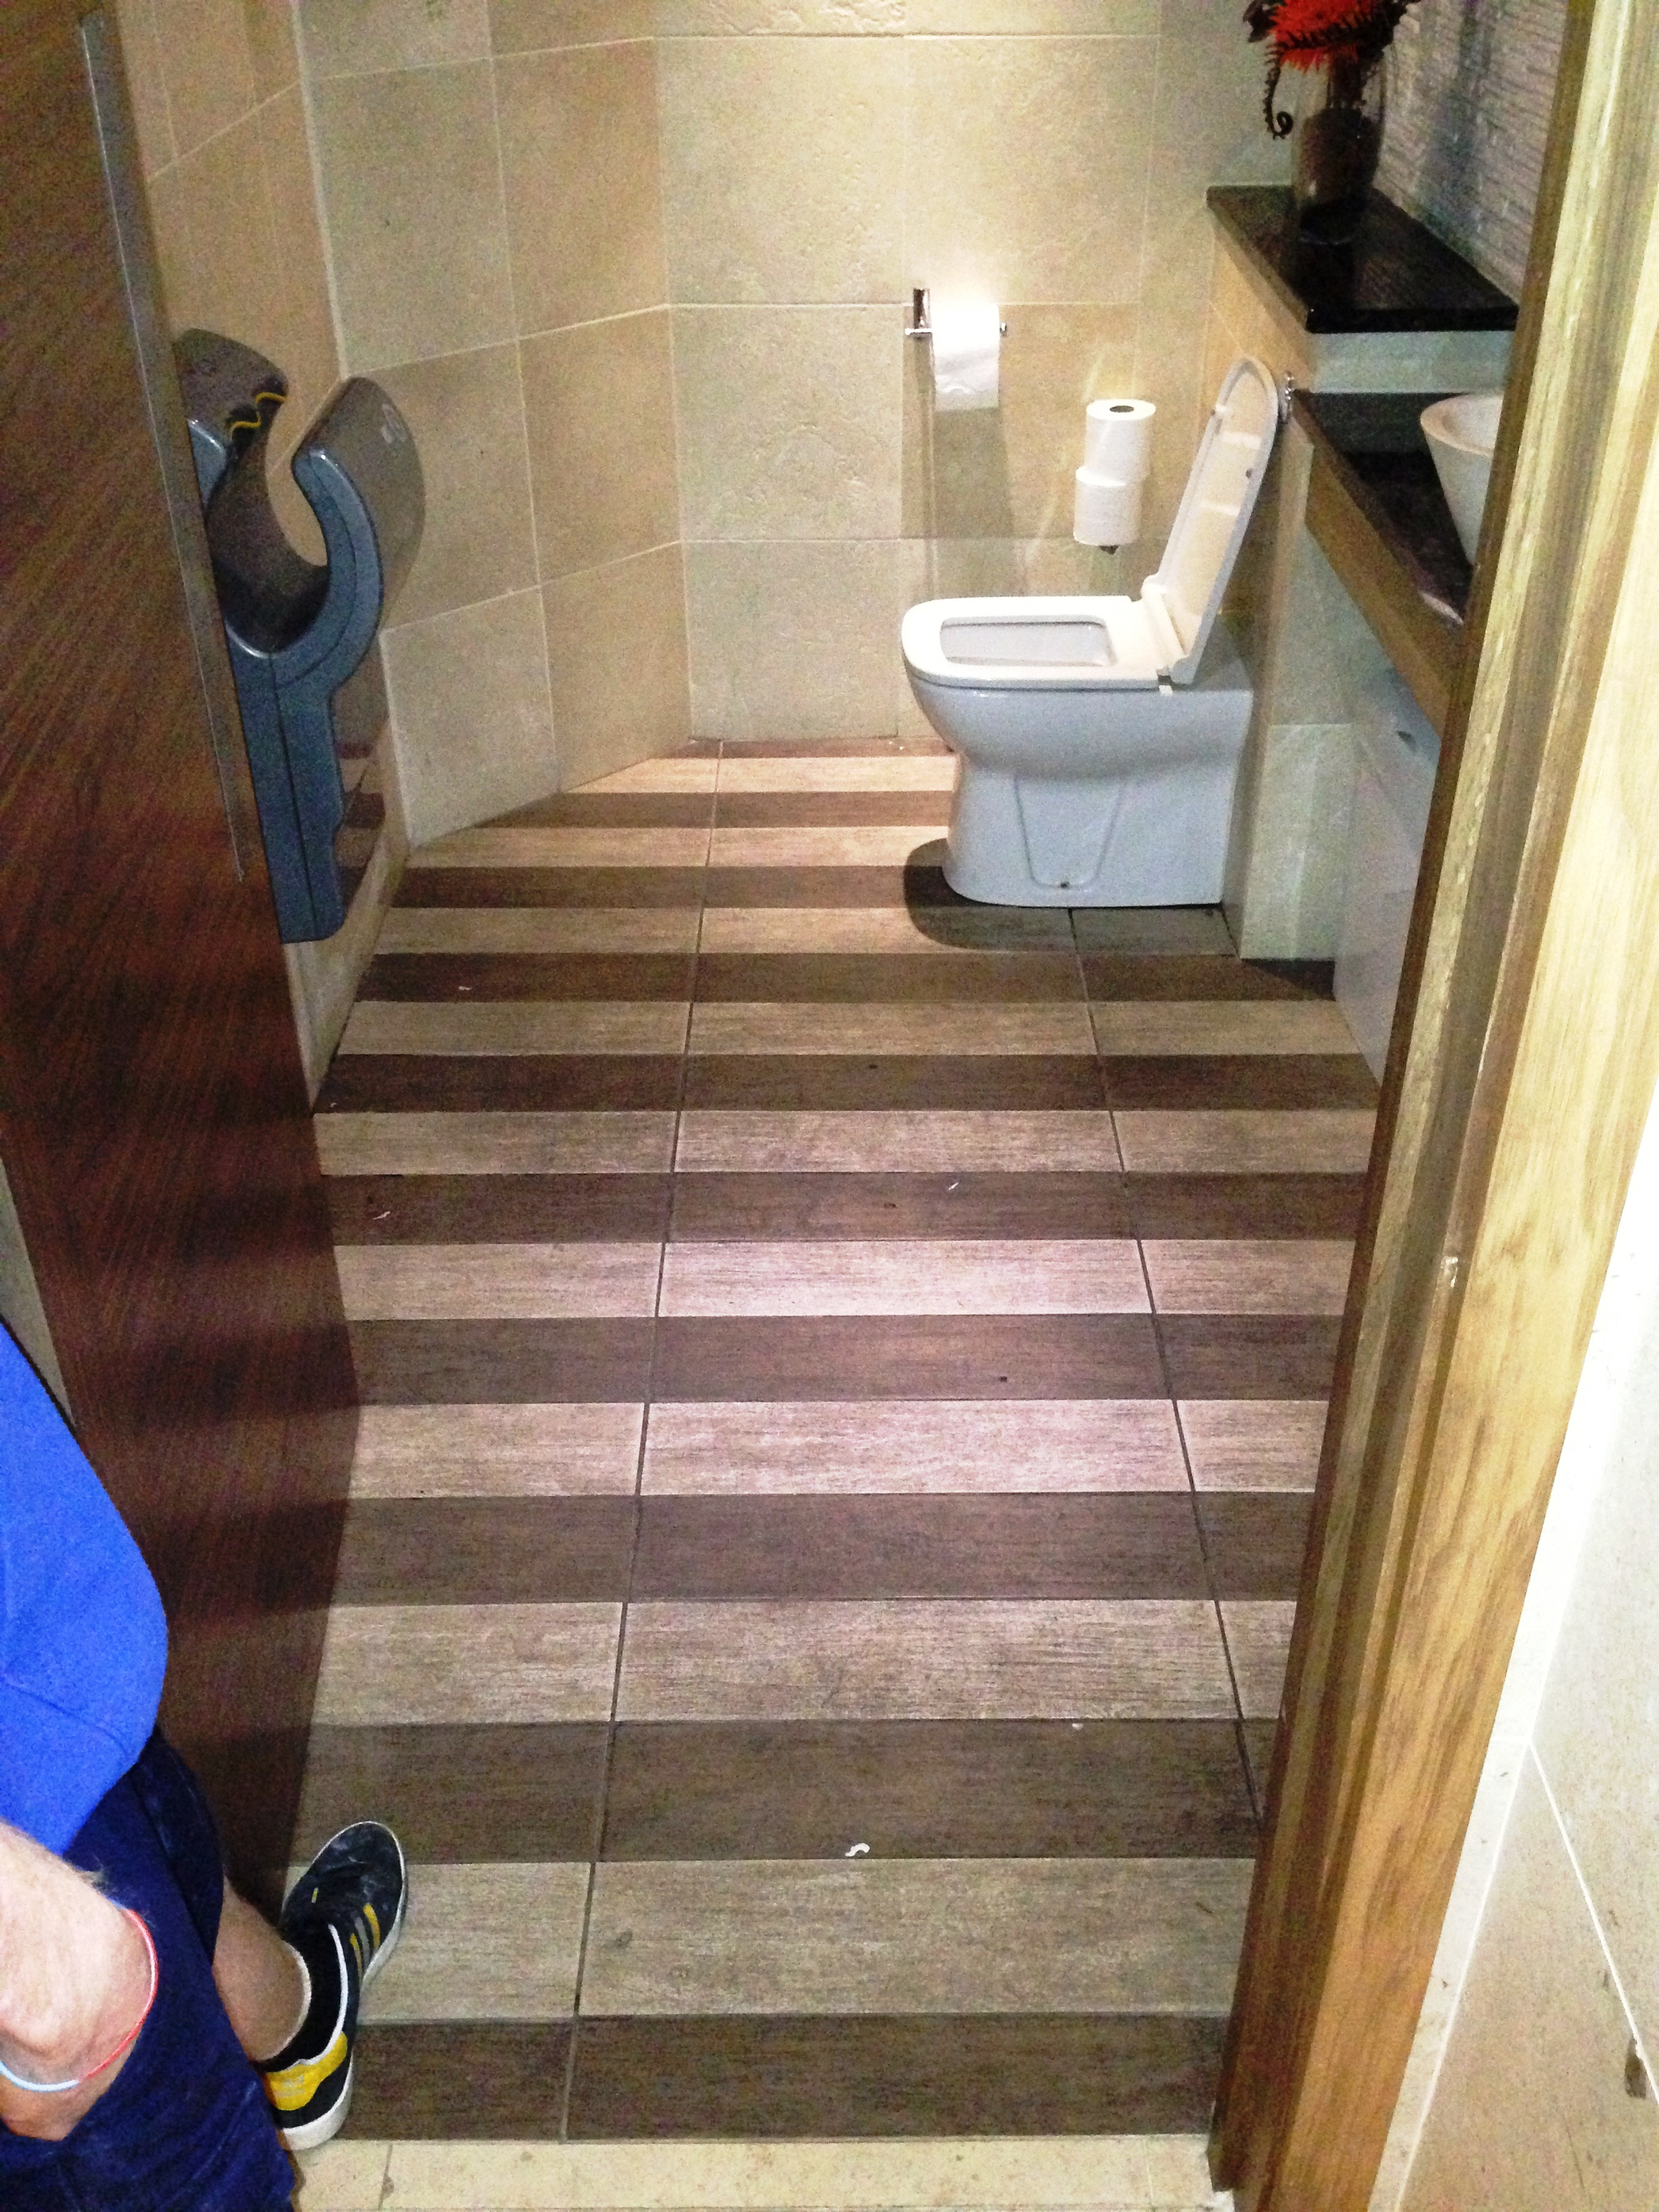 Anti-Slip-Tiled-Hallway-Before-Cleaning